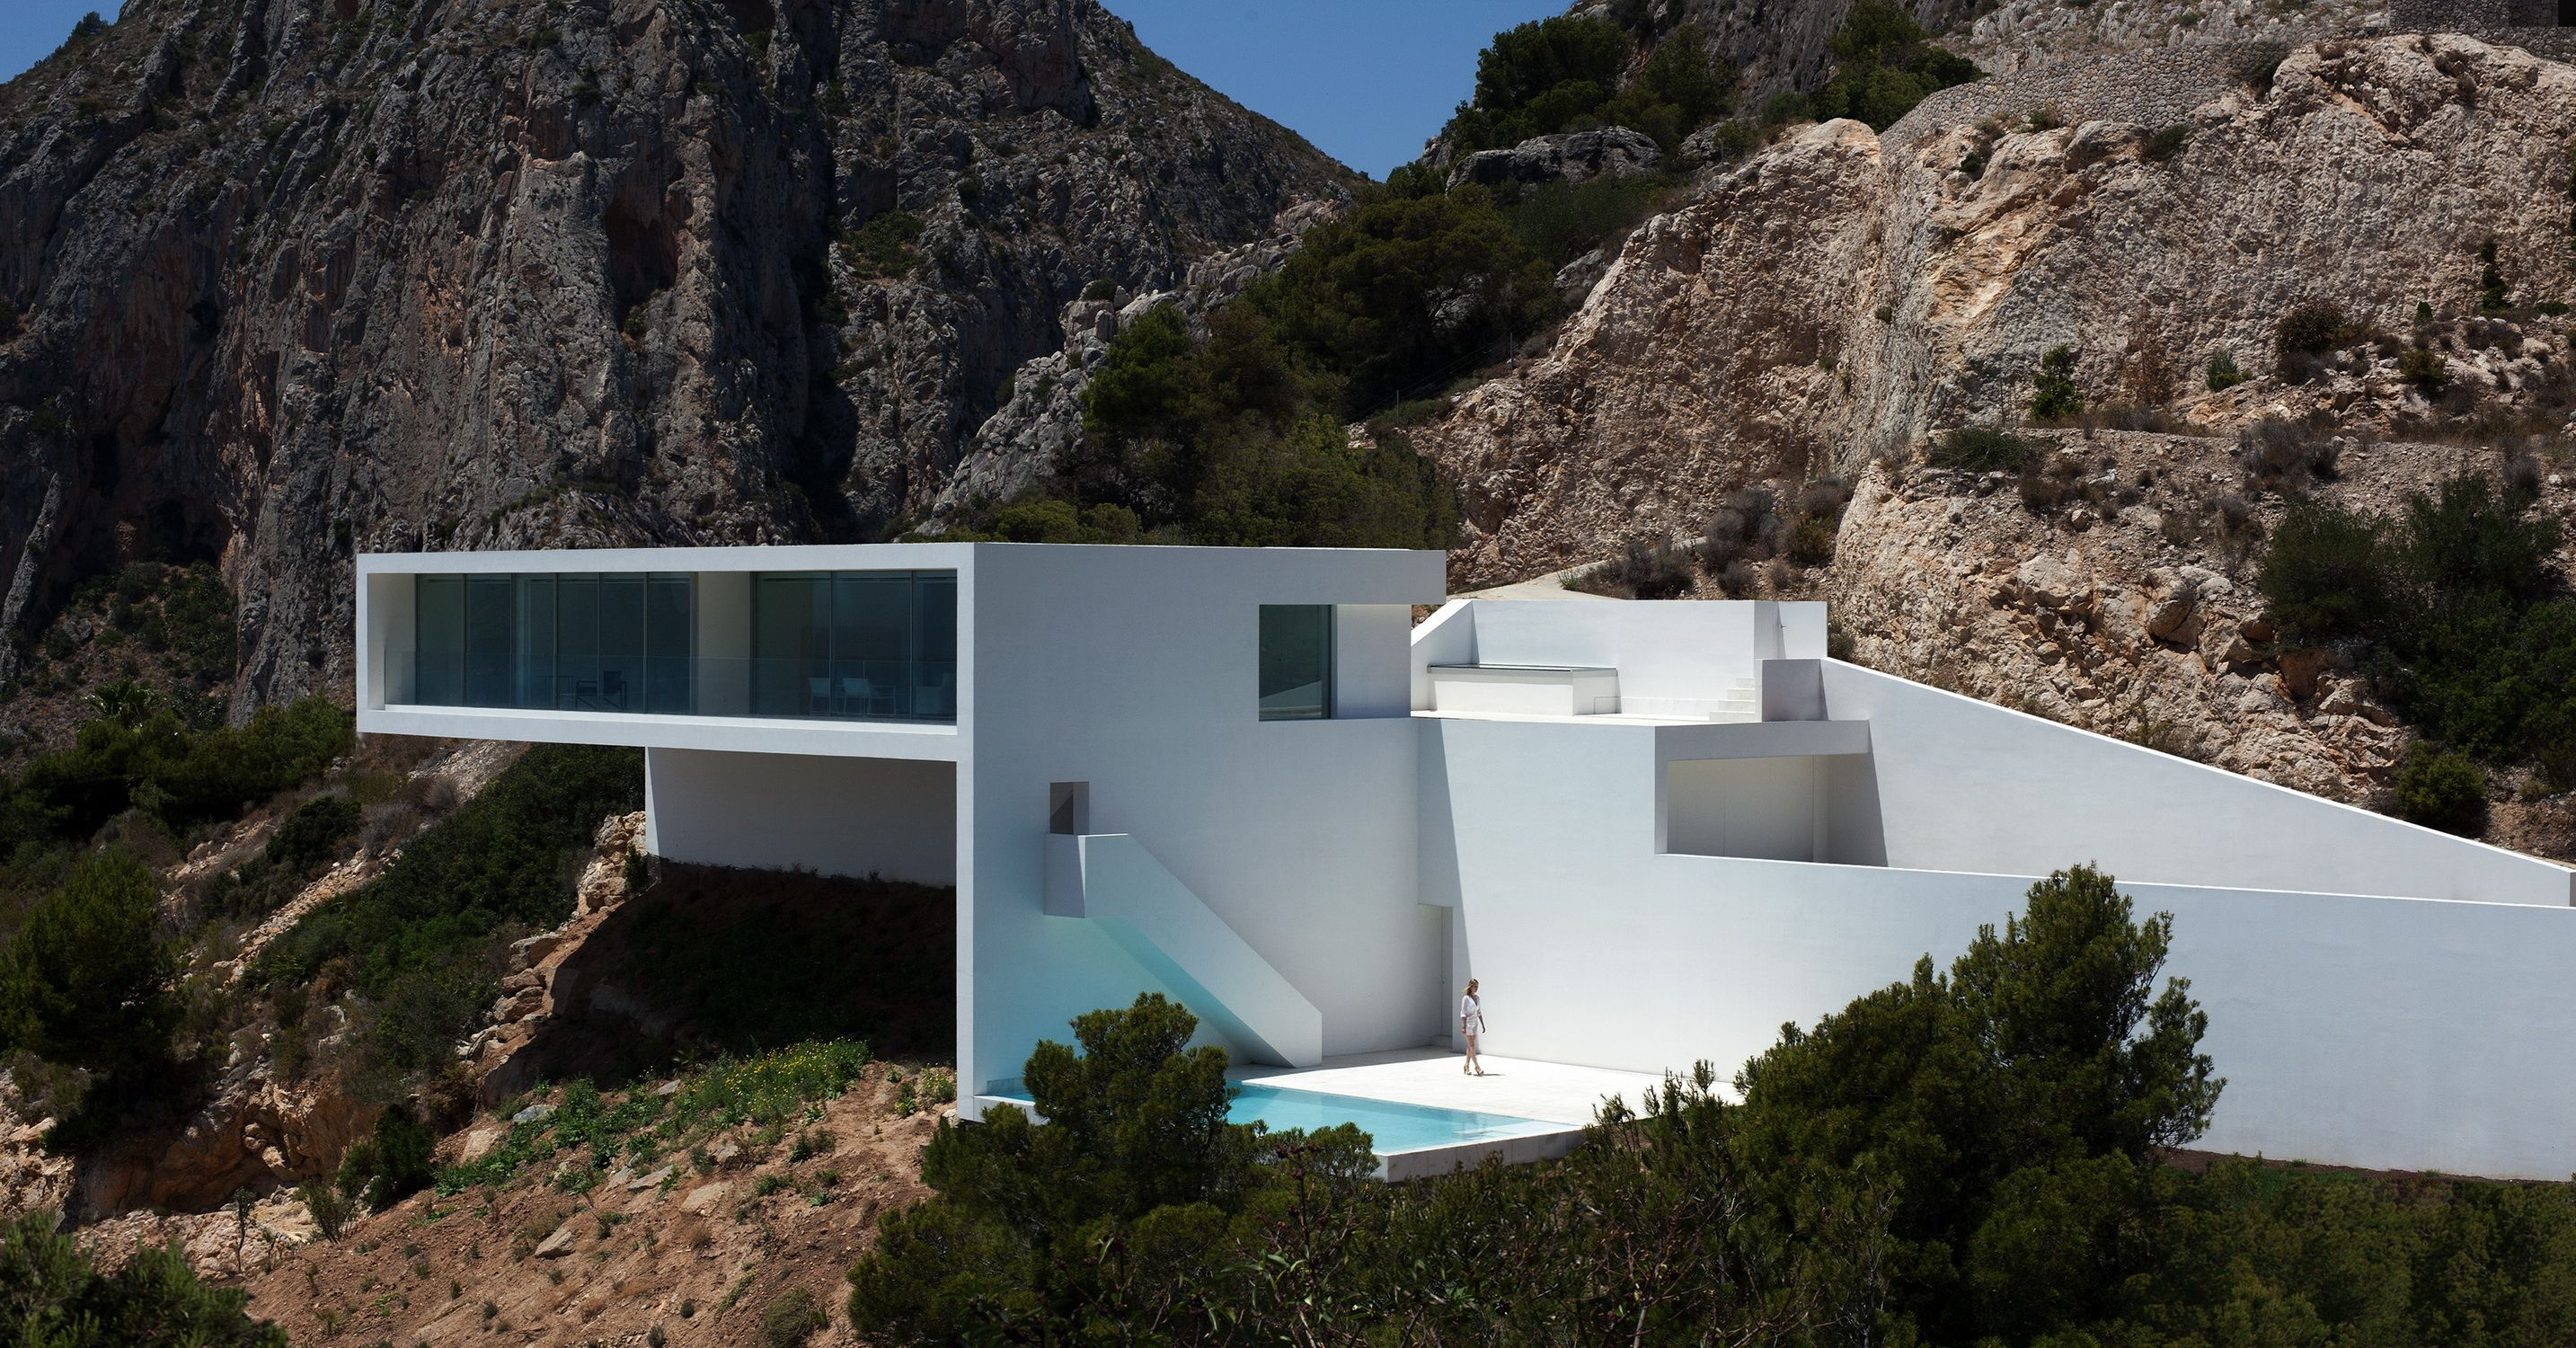 Concrete was used for the entire structure, but the walls were coated in stucco to create the clean white aesthetic.